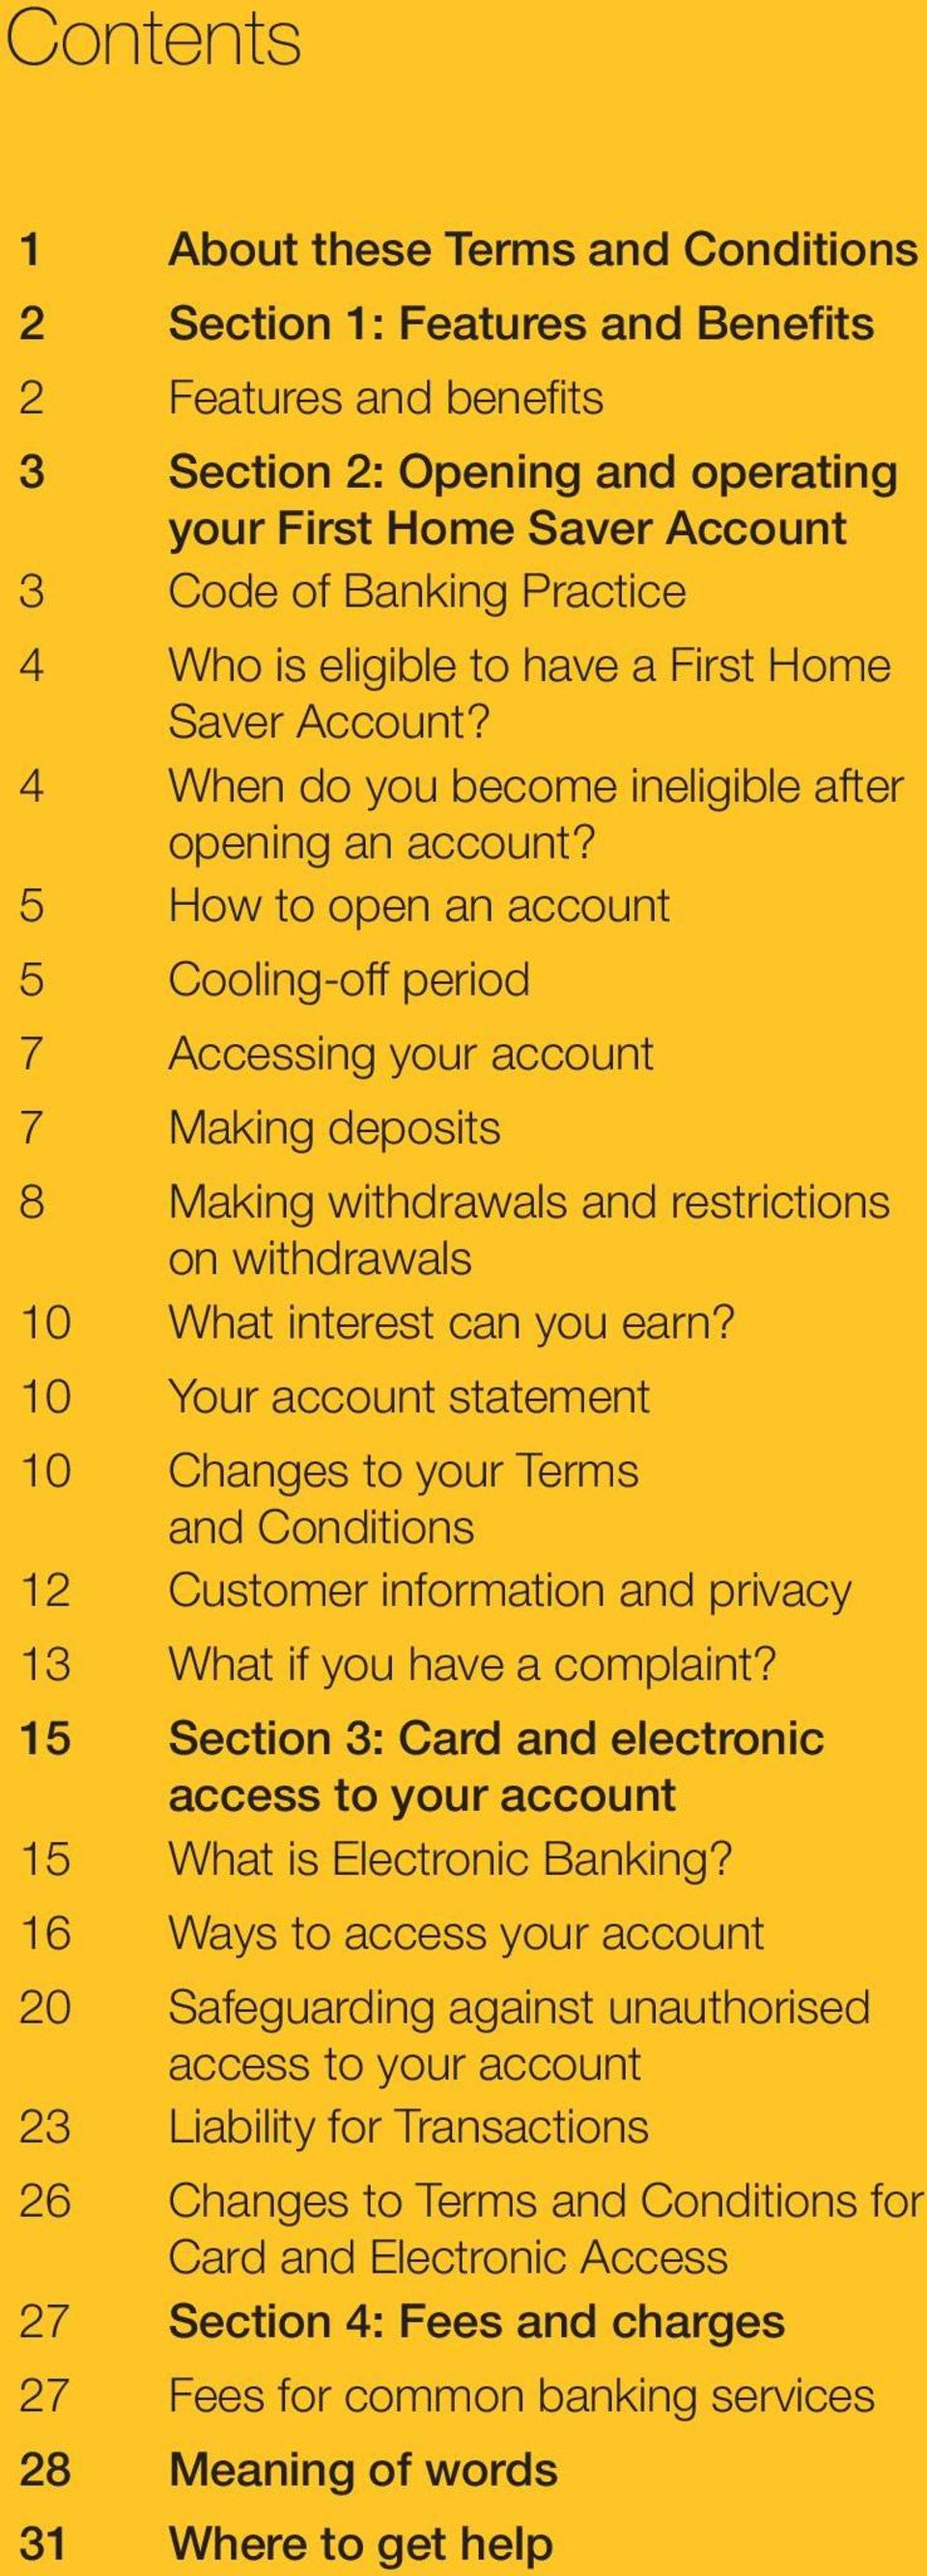 5 How to open an account 5 Cooling-off period 7 Accessing your account 7 Making deposits 8 Making withdrawals and restrictions on withdrawals 10 What interest can you earn?